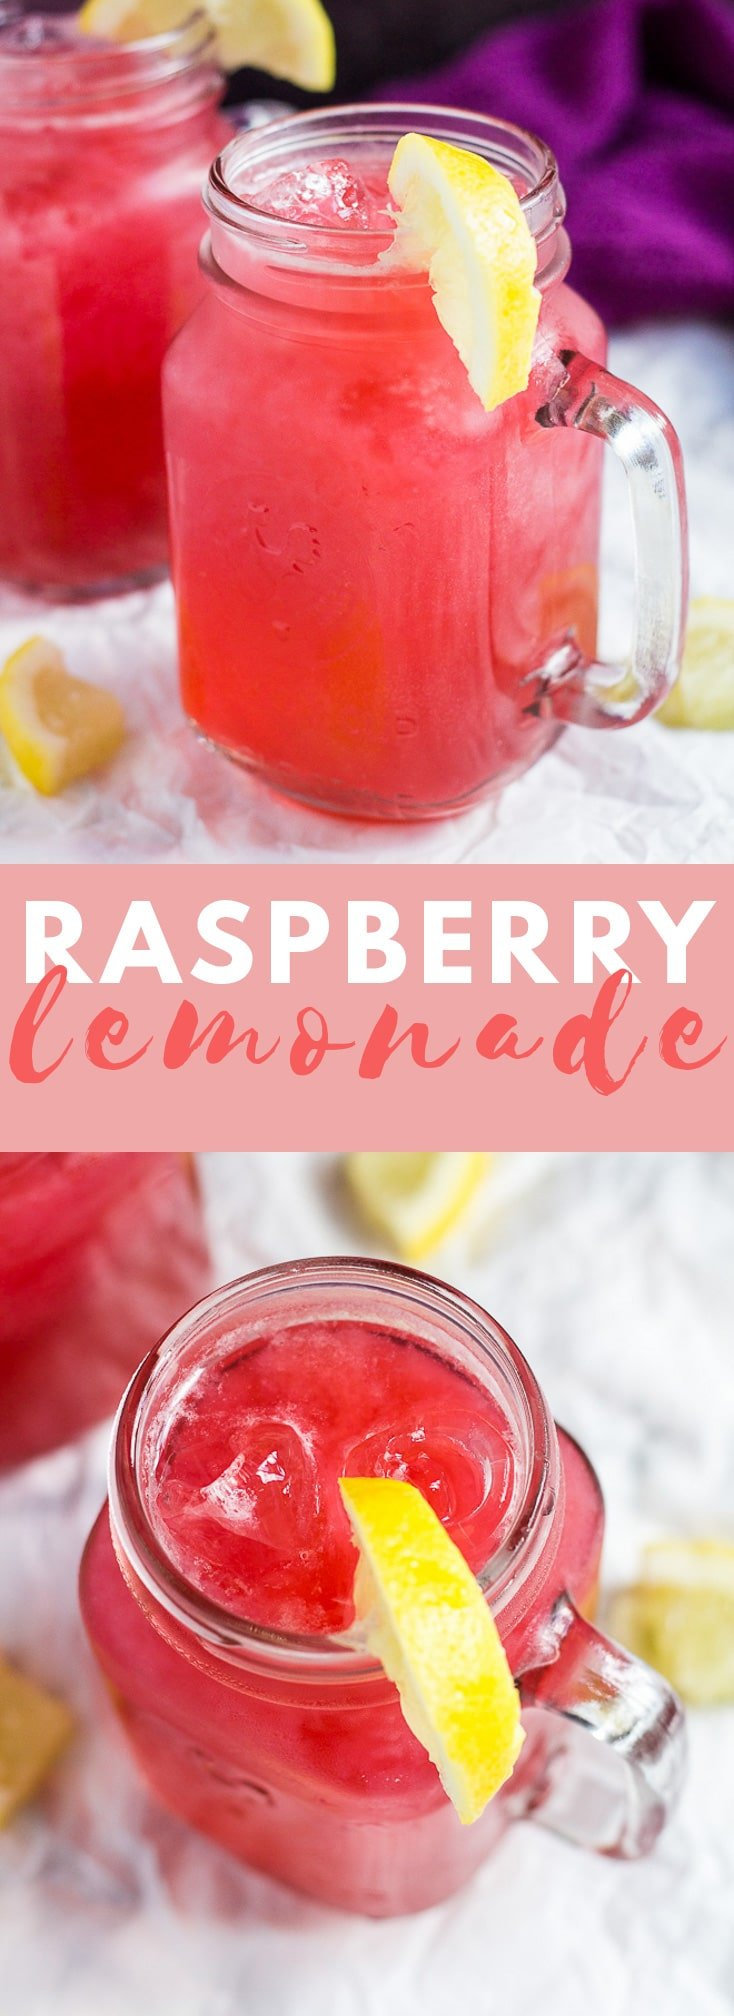 Raspberry Lemonade - Deliciously cool and refreshing raspberry lemonade made with fresh raspberries and lemons. Perfect for hot summer days!